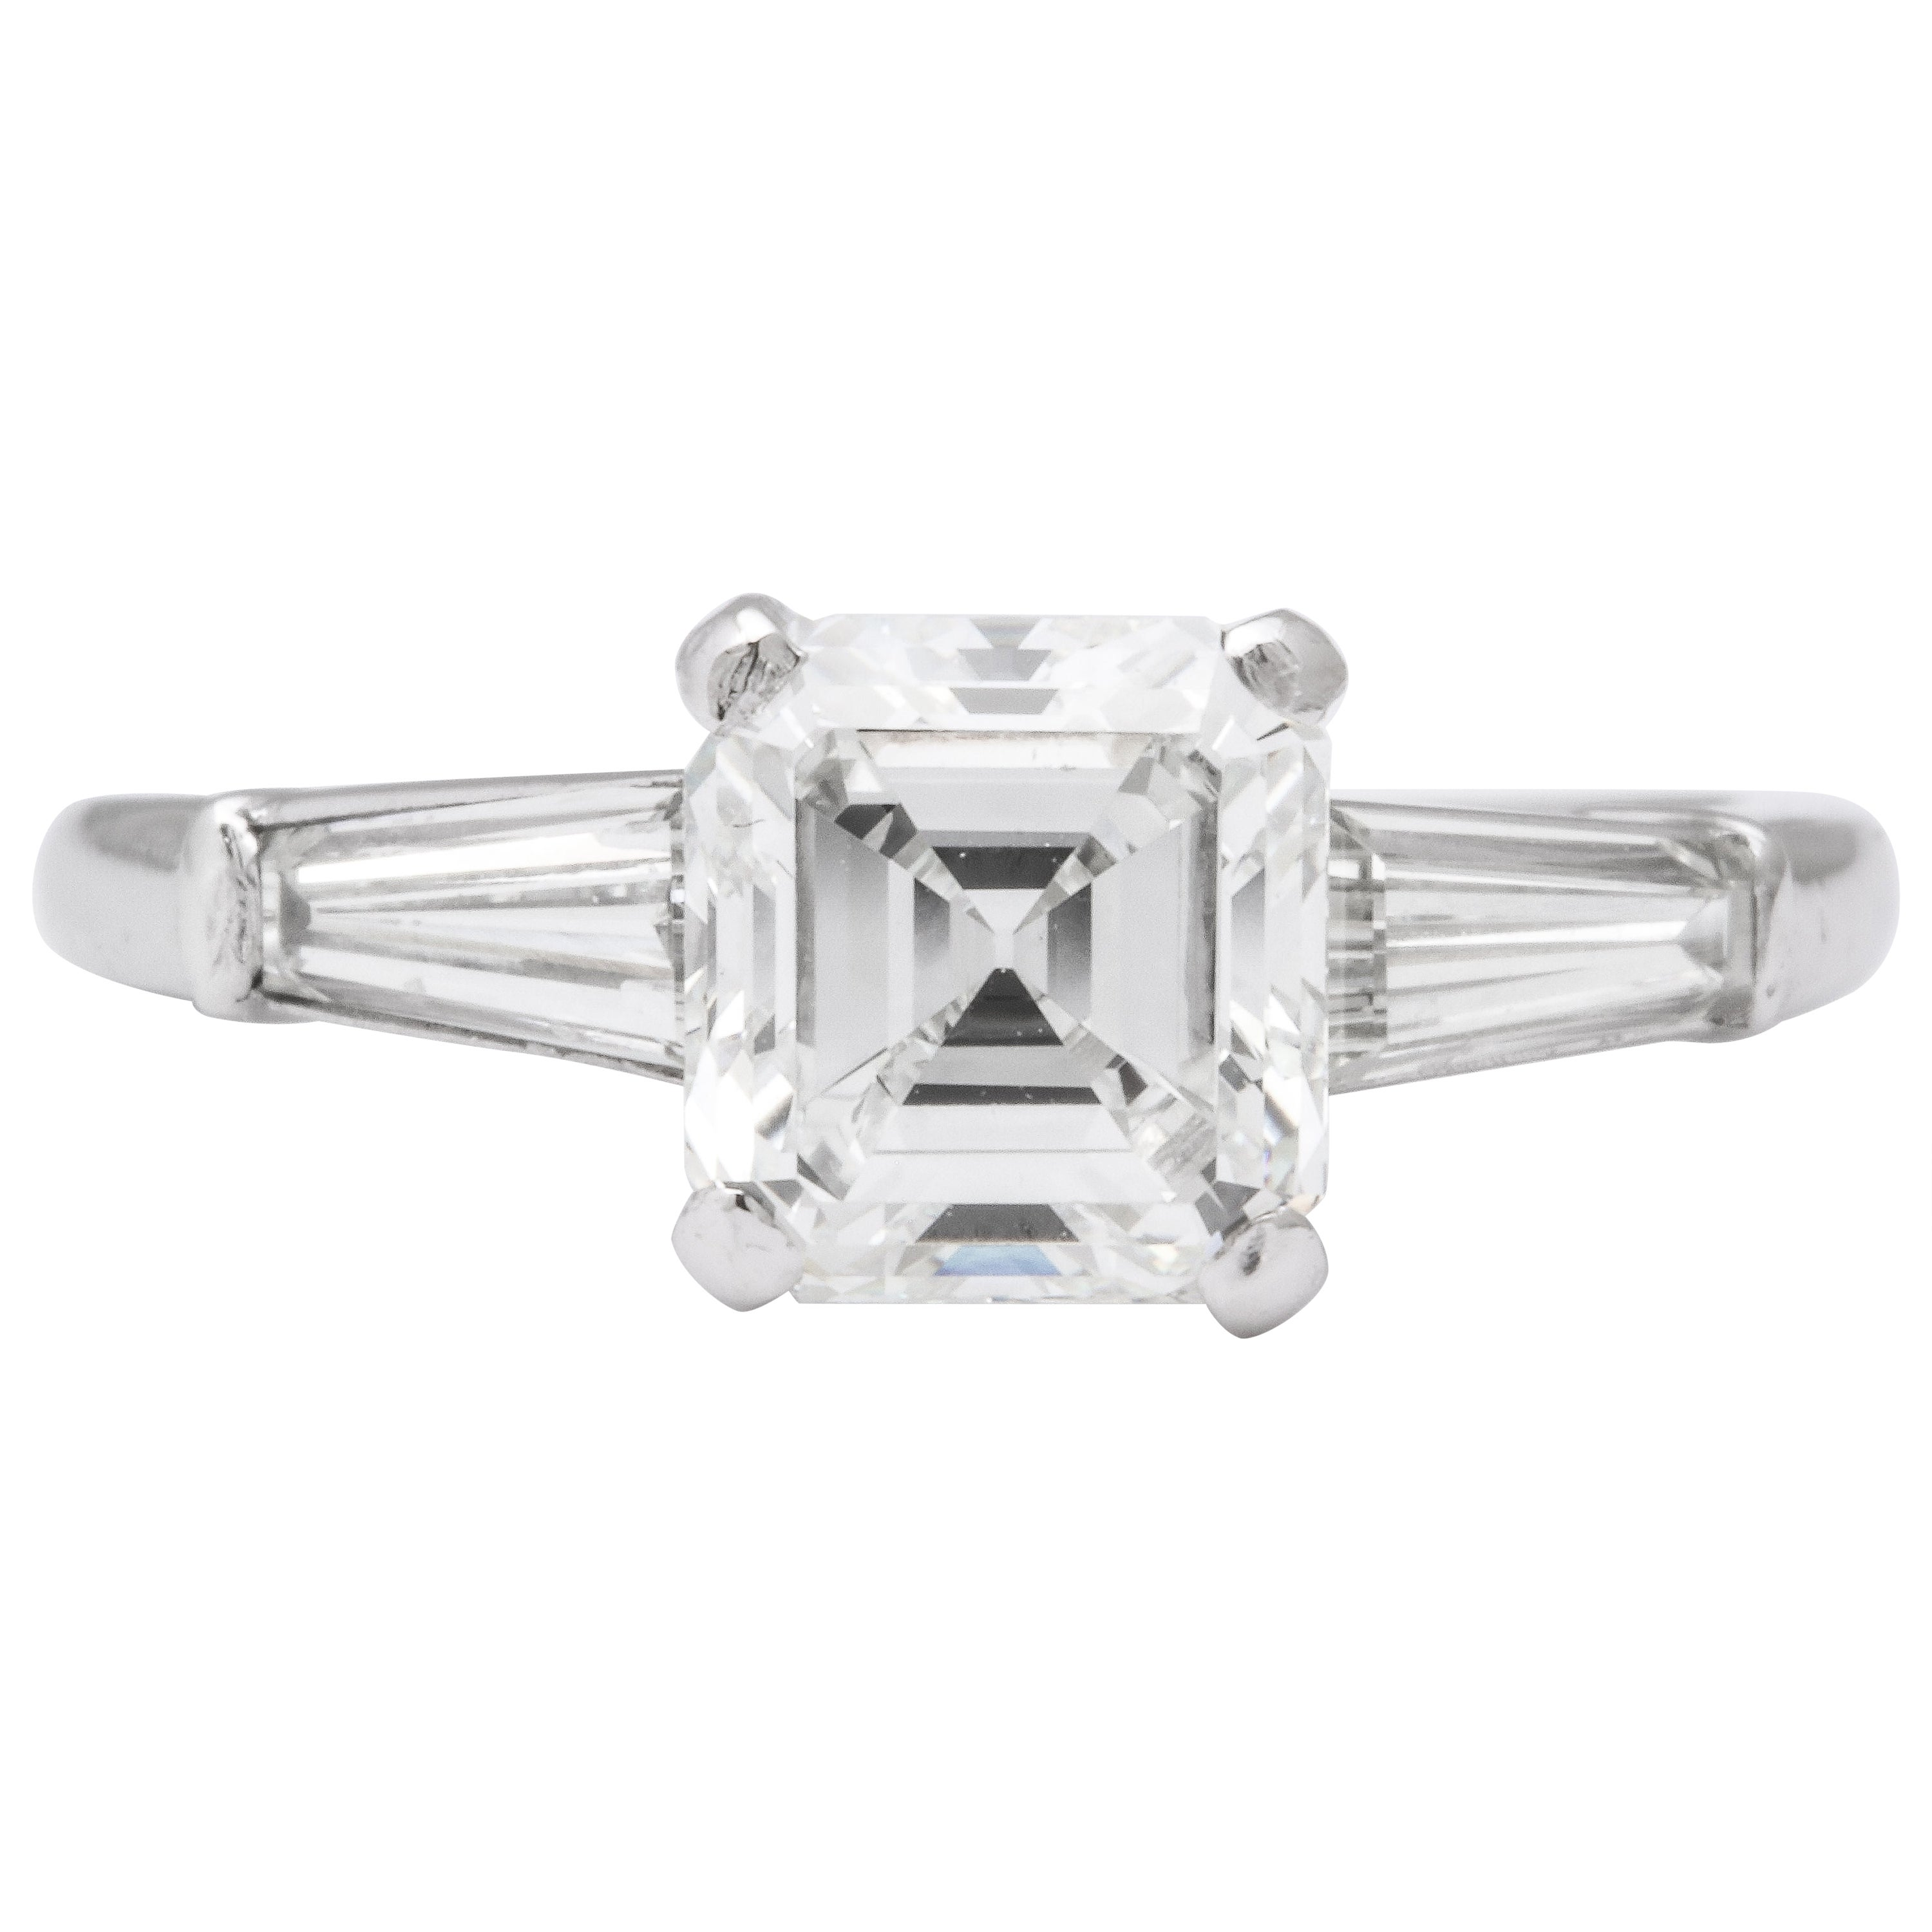 GIA Certified G VVS2 Square Emerald Cut Diamond Platinum Ring